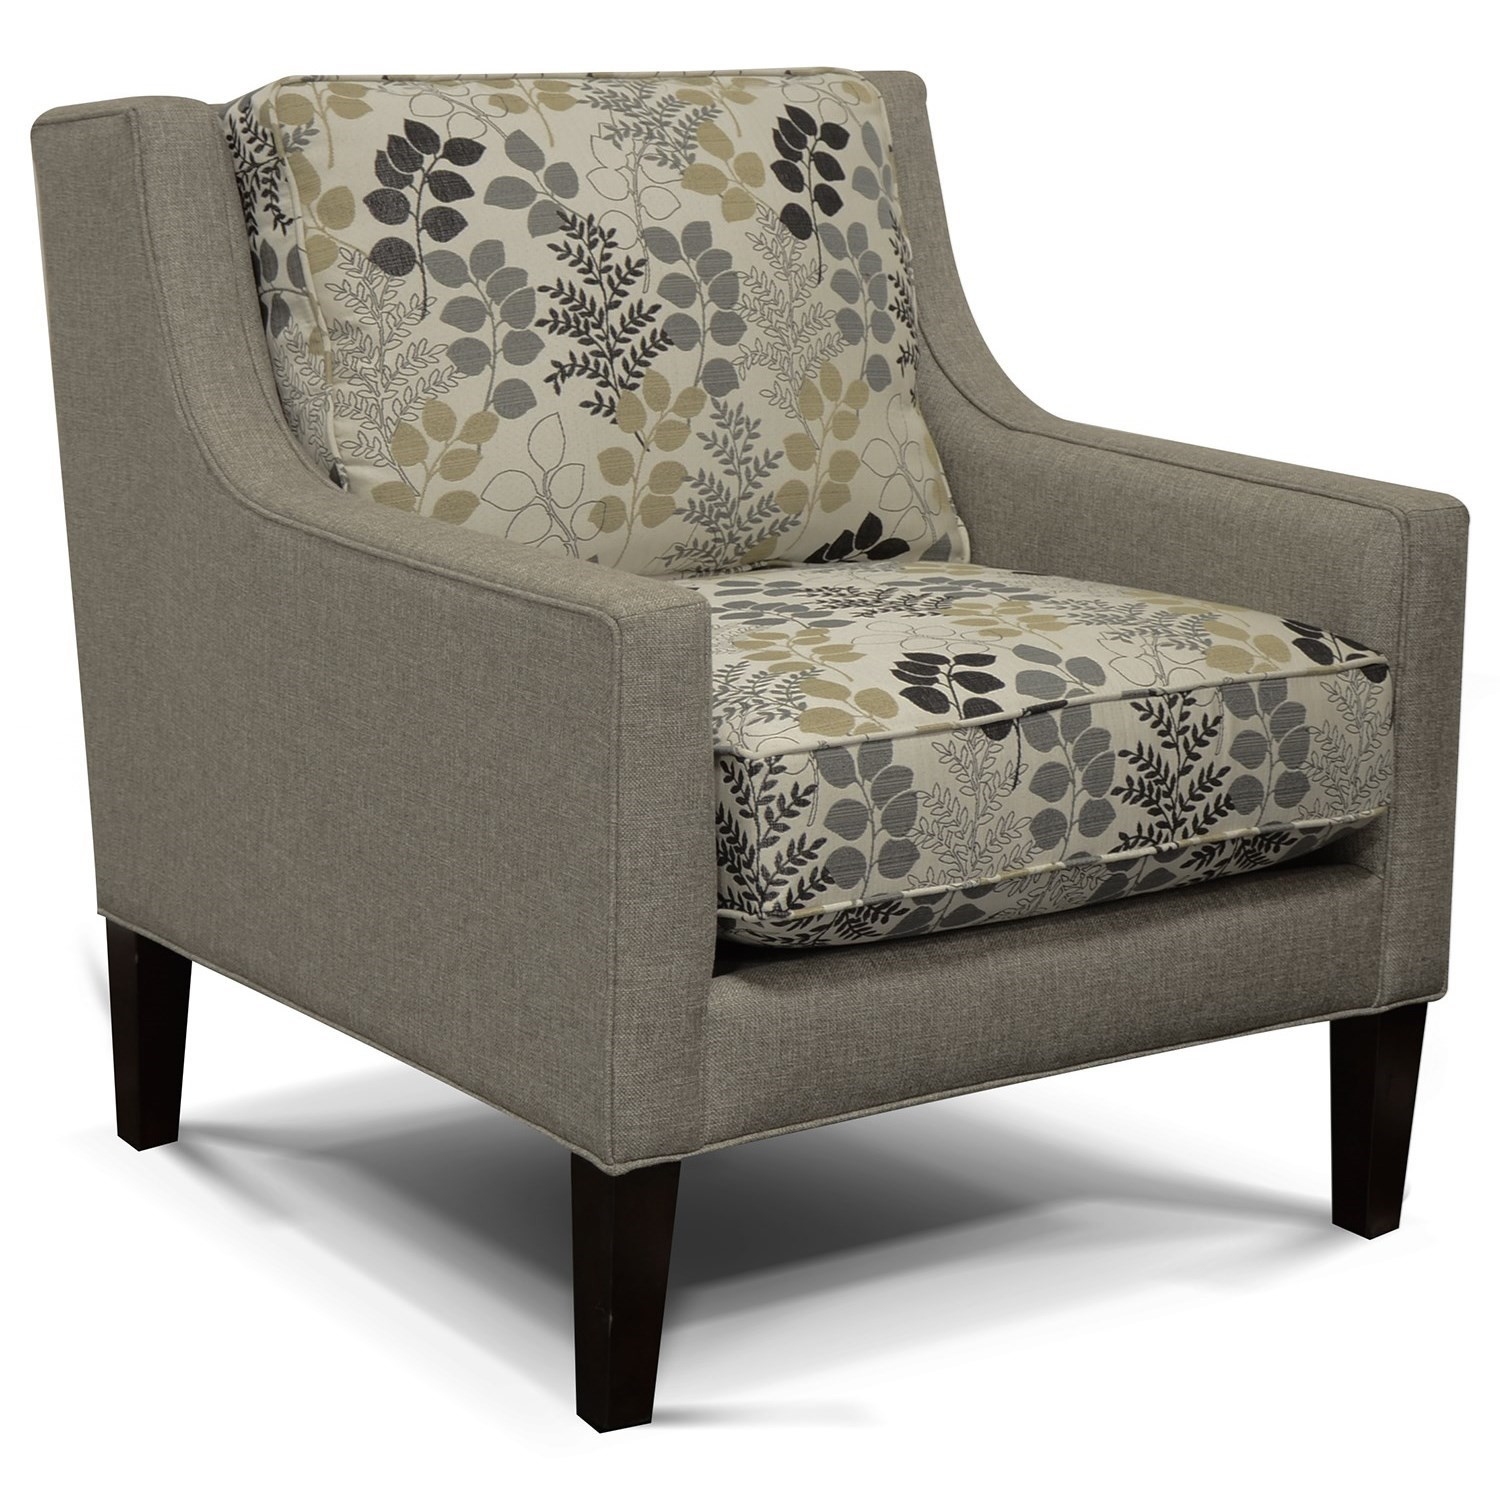 1884 and 1887 Chair by England at Novello Home Furnishings